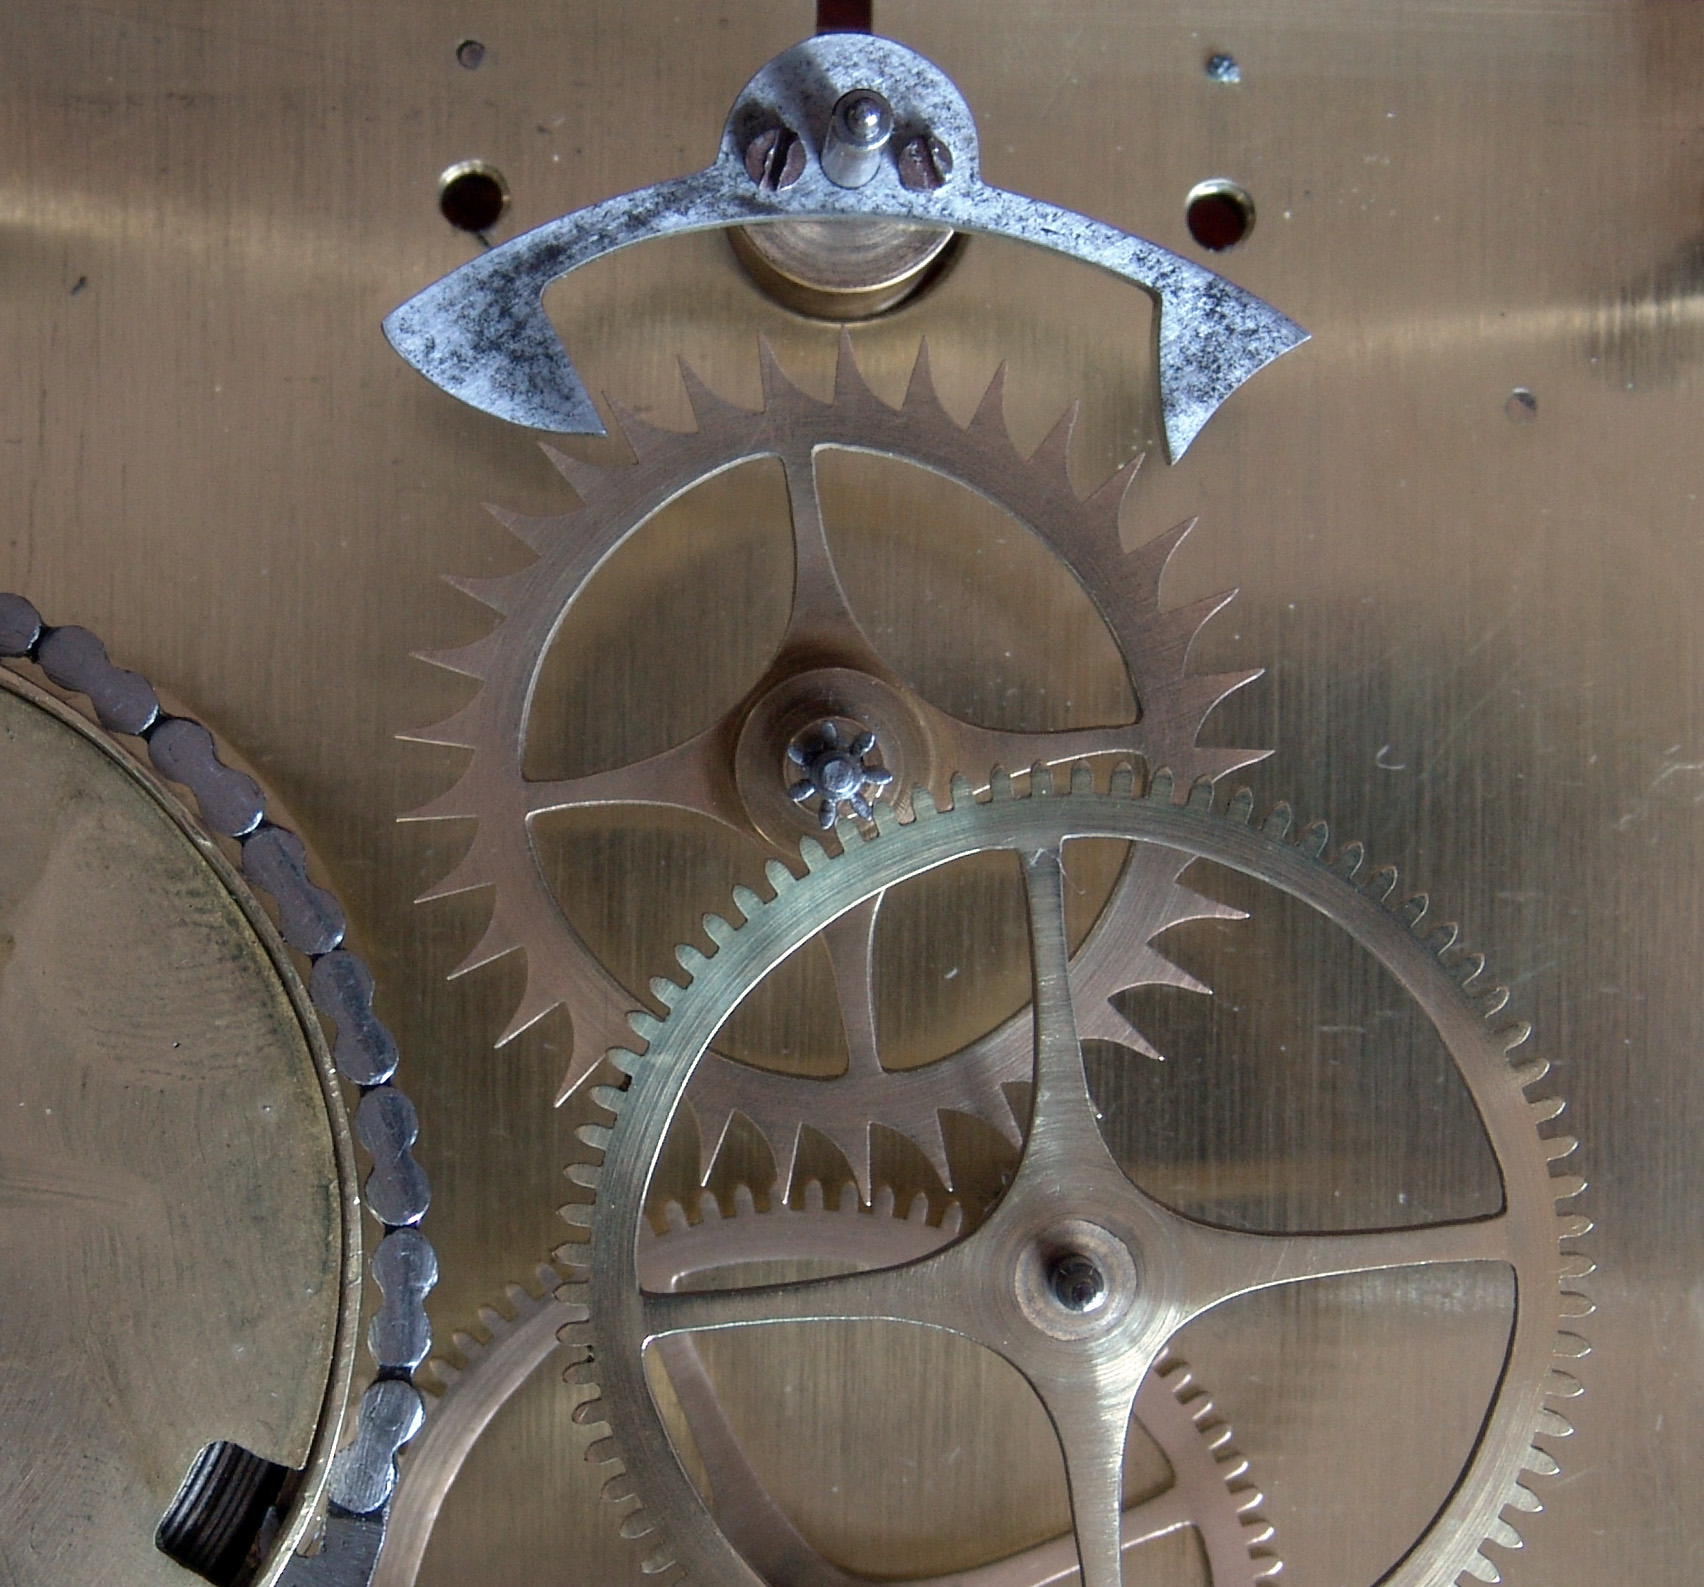 File:Anchor escapement.jpg - Wikimedia Commons